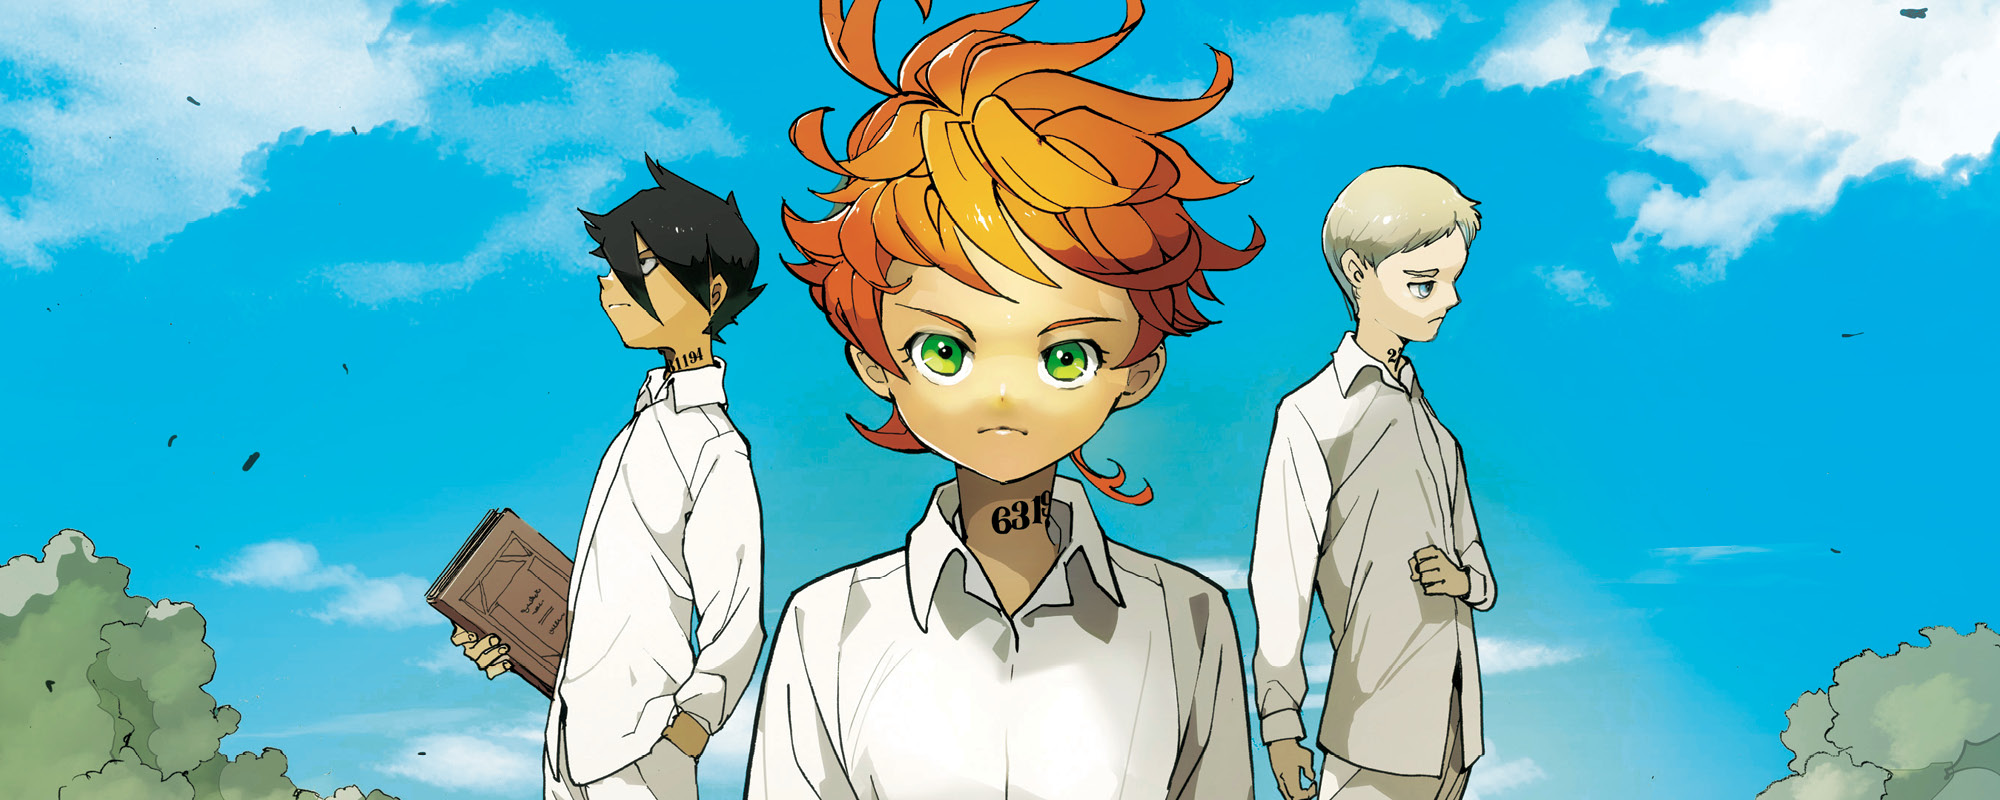 the promised neverland  VIZ | Read The Promised Neverland Manga Free - Official Shonen Jump ...